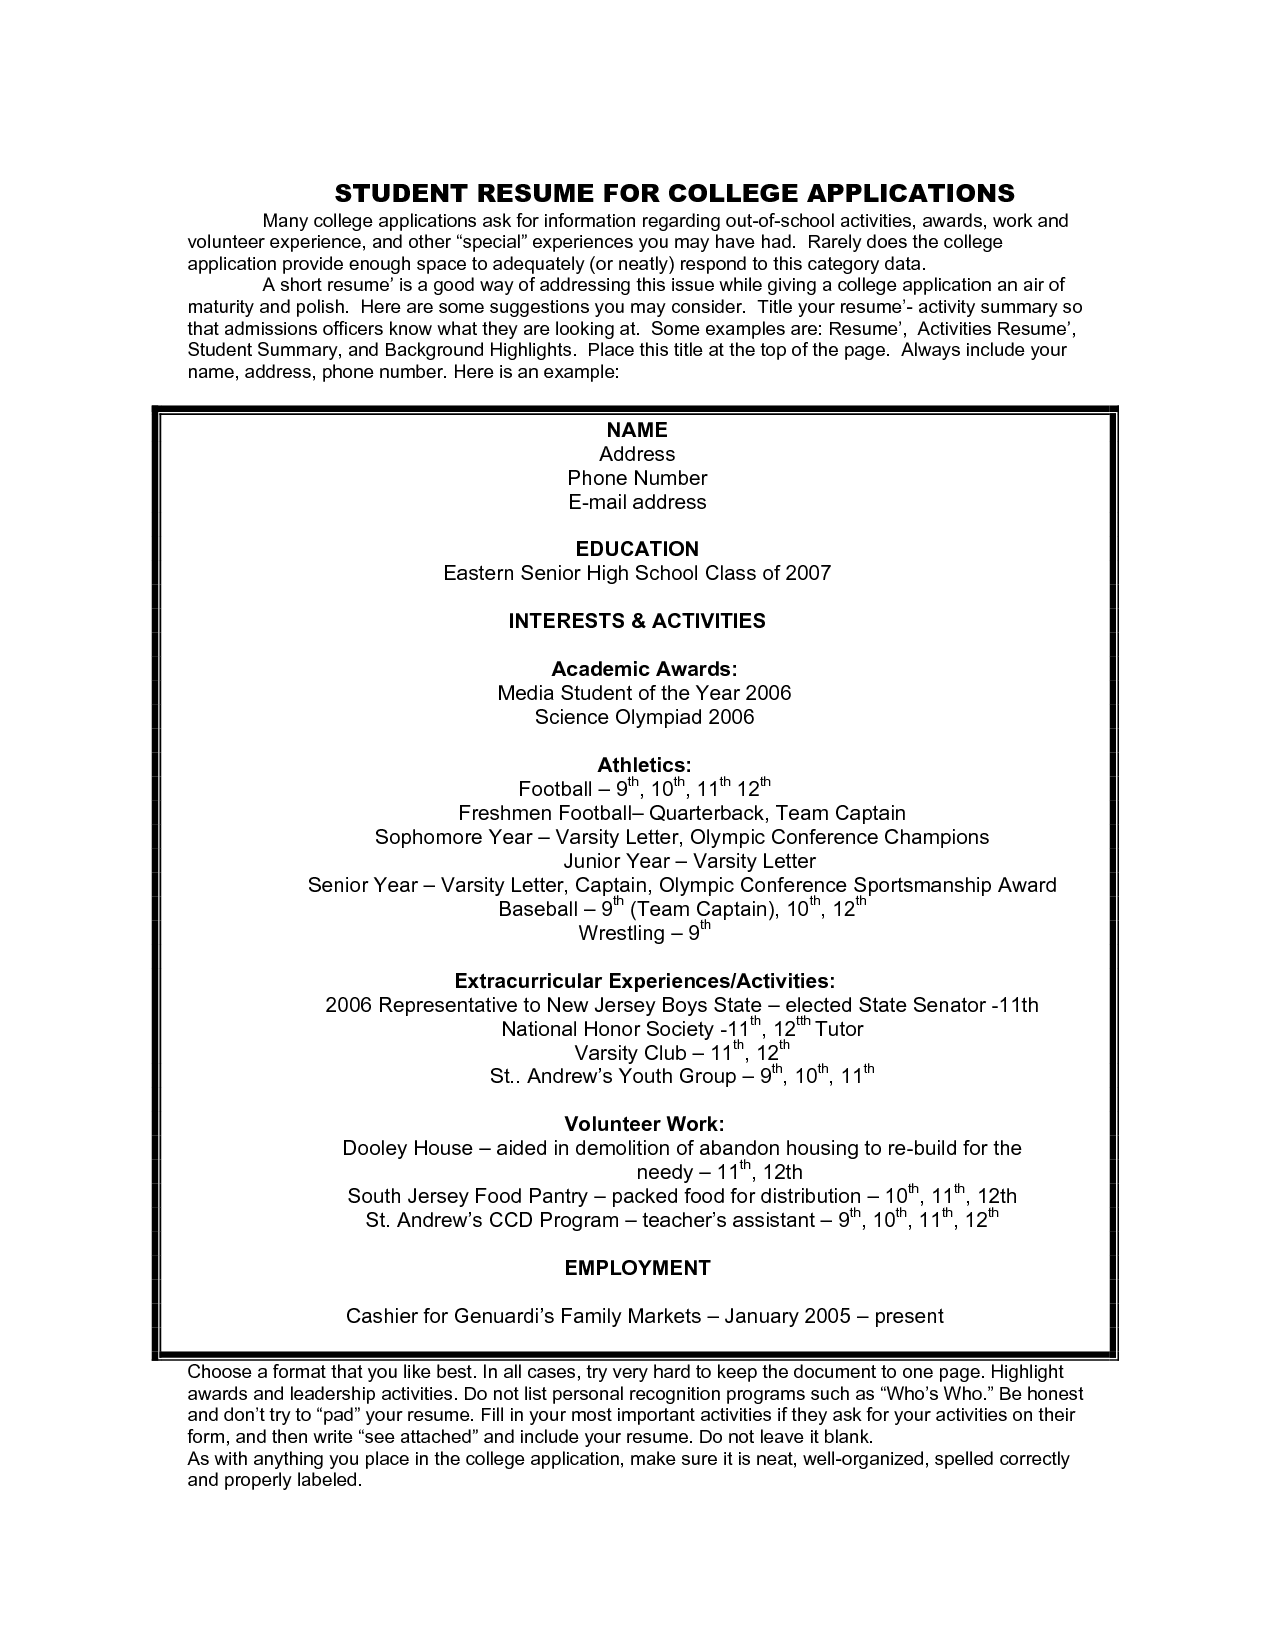 Wrestling Resume Resume Samples For College Applications Student Sample Resume